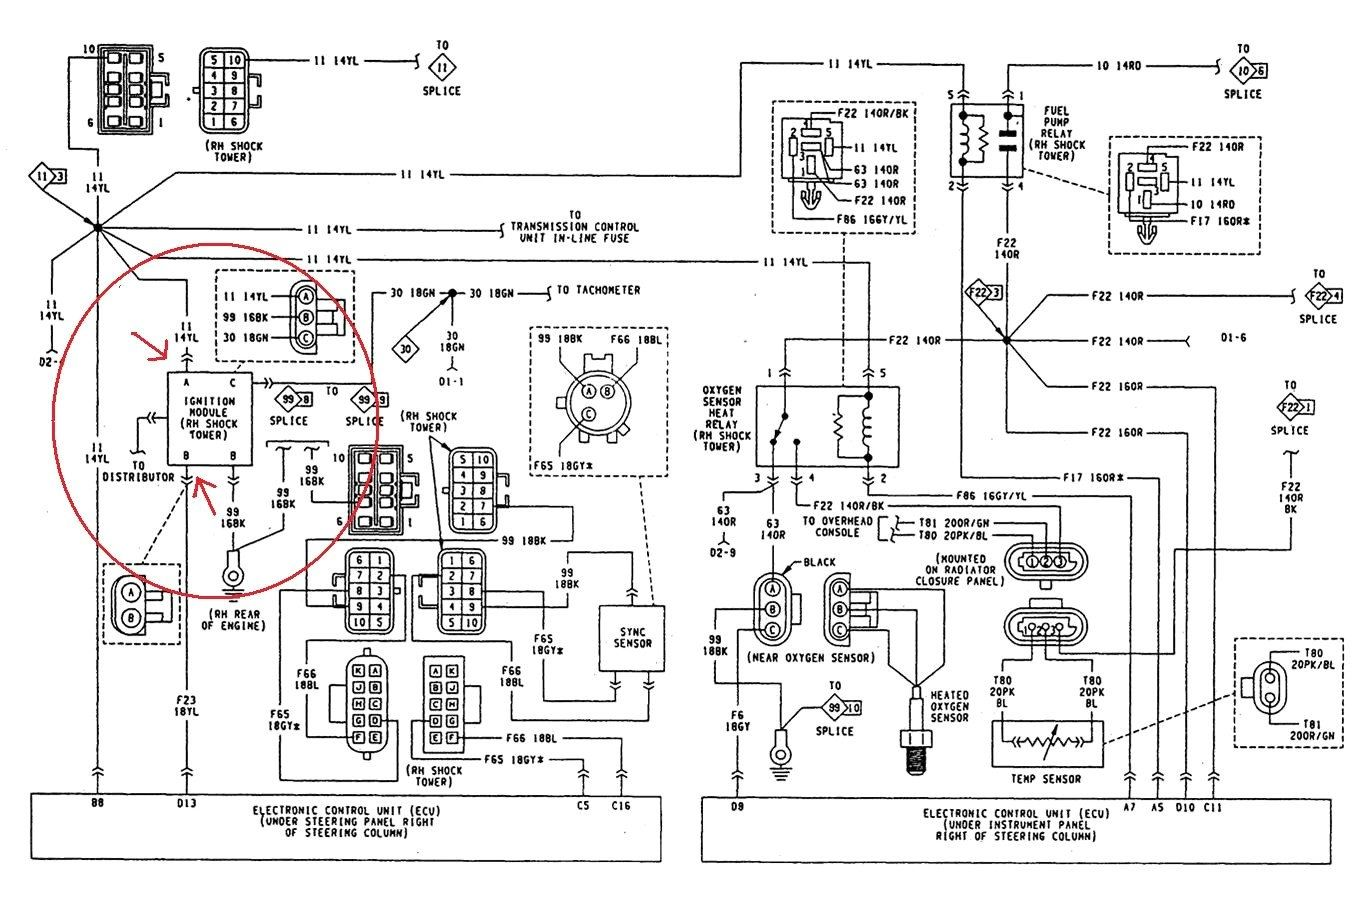 1990 jeep yj vacuum diagram 1990 jeep wrangler 4 2 vacuum diagram1990 jeep yj vacuum diagram [ 1352 x 900 Pixel ]